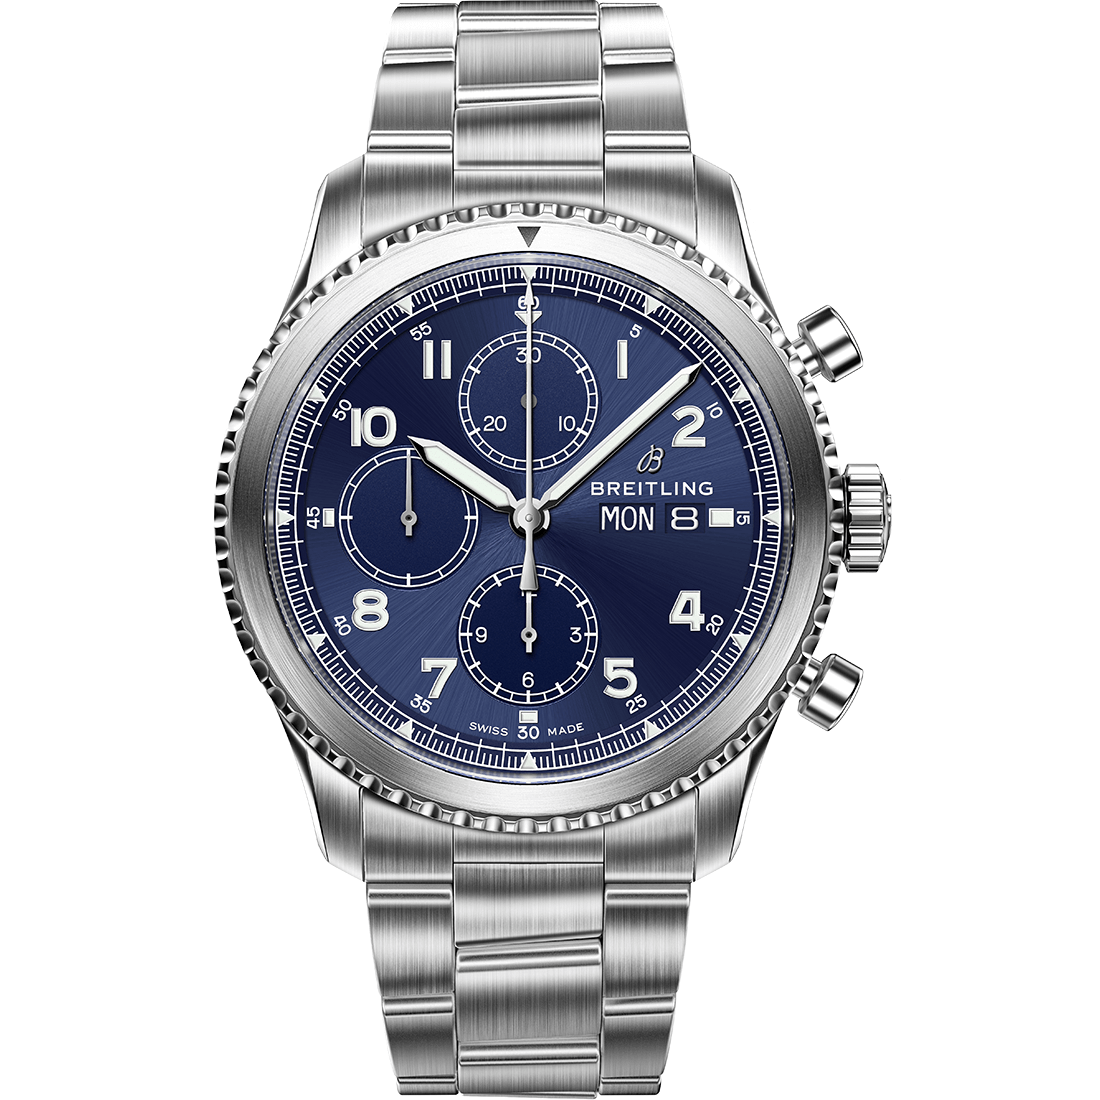 Navitimer 8 Chronograph with blue dial and stainless steel bracelet